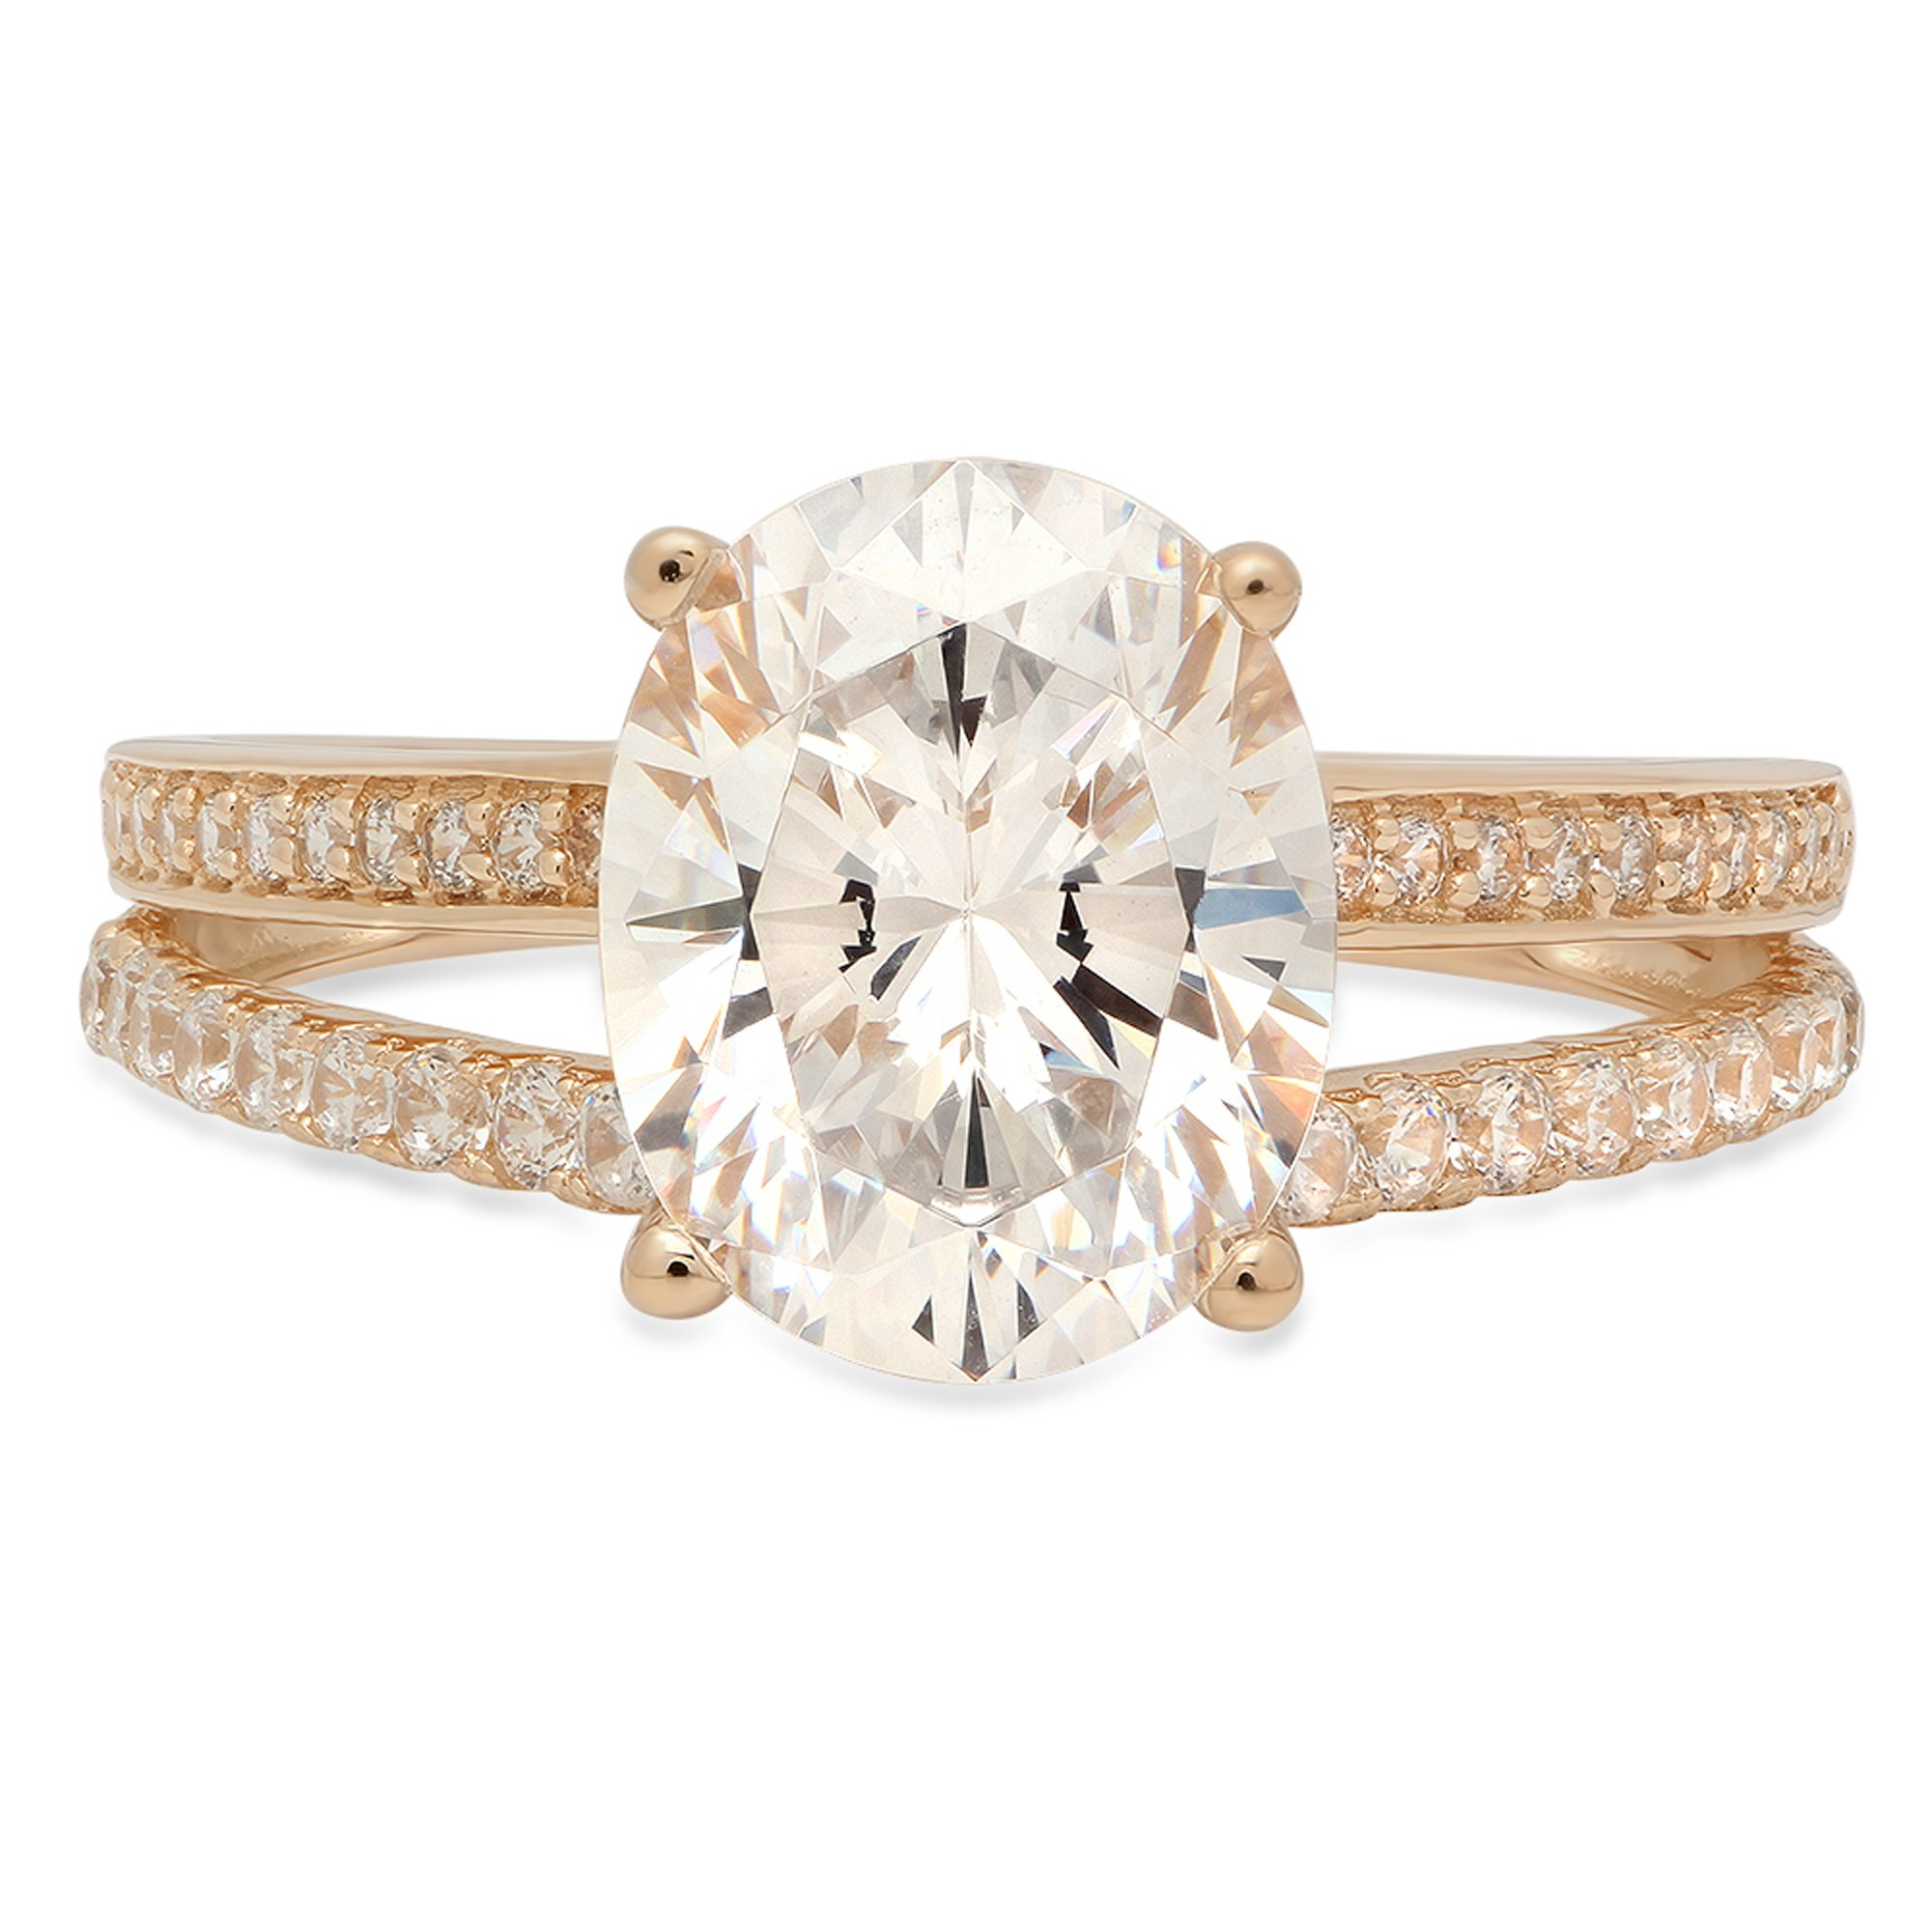 Clara Pucci 2.30ct Brilliant Oval Cut Engagement Wedding Promise Ring Bridal Jewelry in Solid 14K Yellow Gold, Size 7 by Clara Pucci